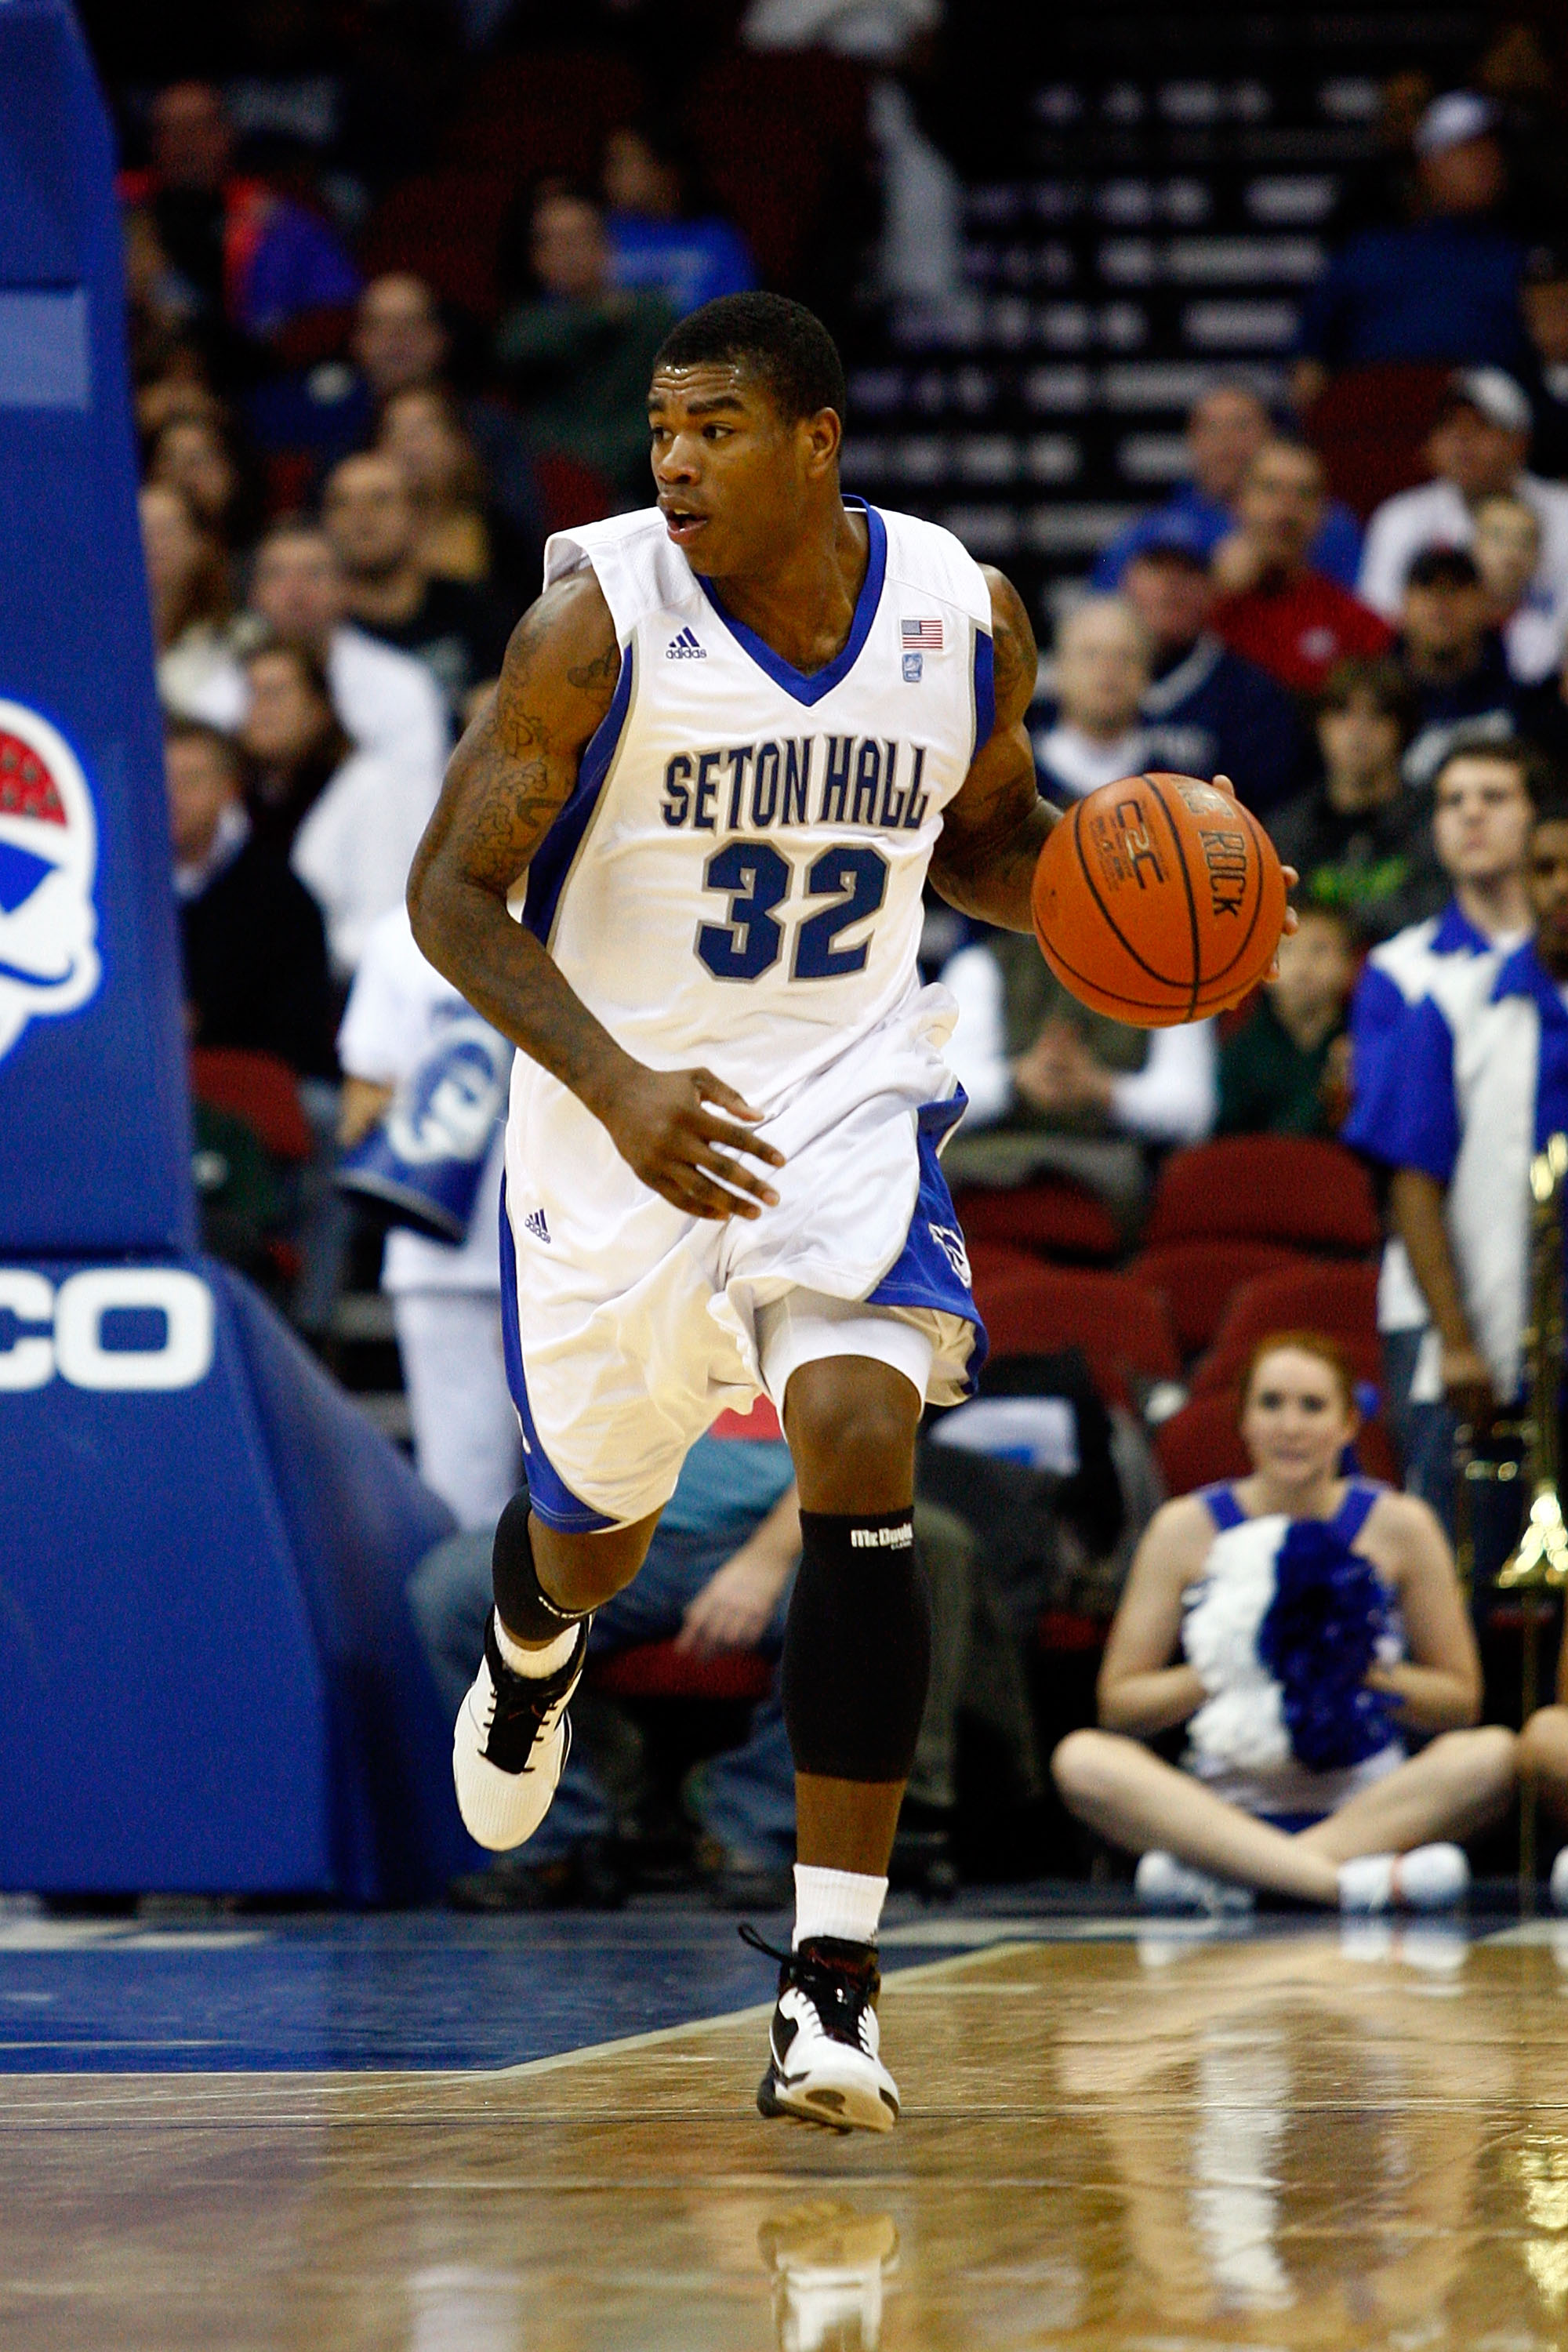 NEWARK, NJ - DECEMBER 22:  Jeff Robinson #32 of the Seton Hall Pirates brings the ball up court against the Dayton Flyers at Prudential Center on December 22, 2010 in Newark, New Jersey. Dayton 69-65. (Photo by Chris Chambers/Getty Images)